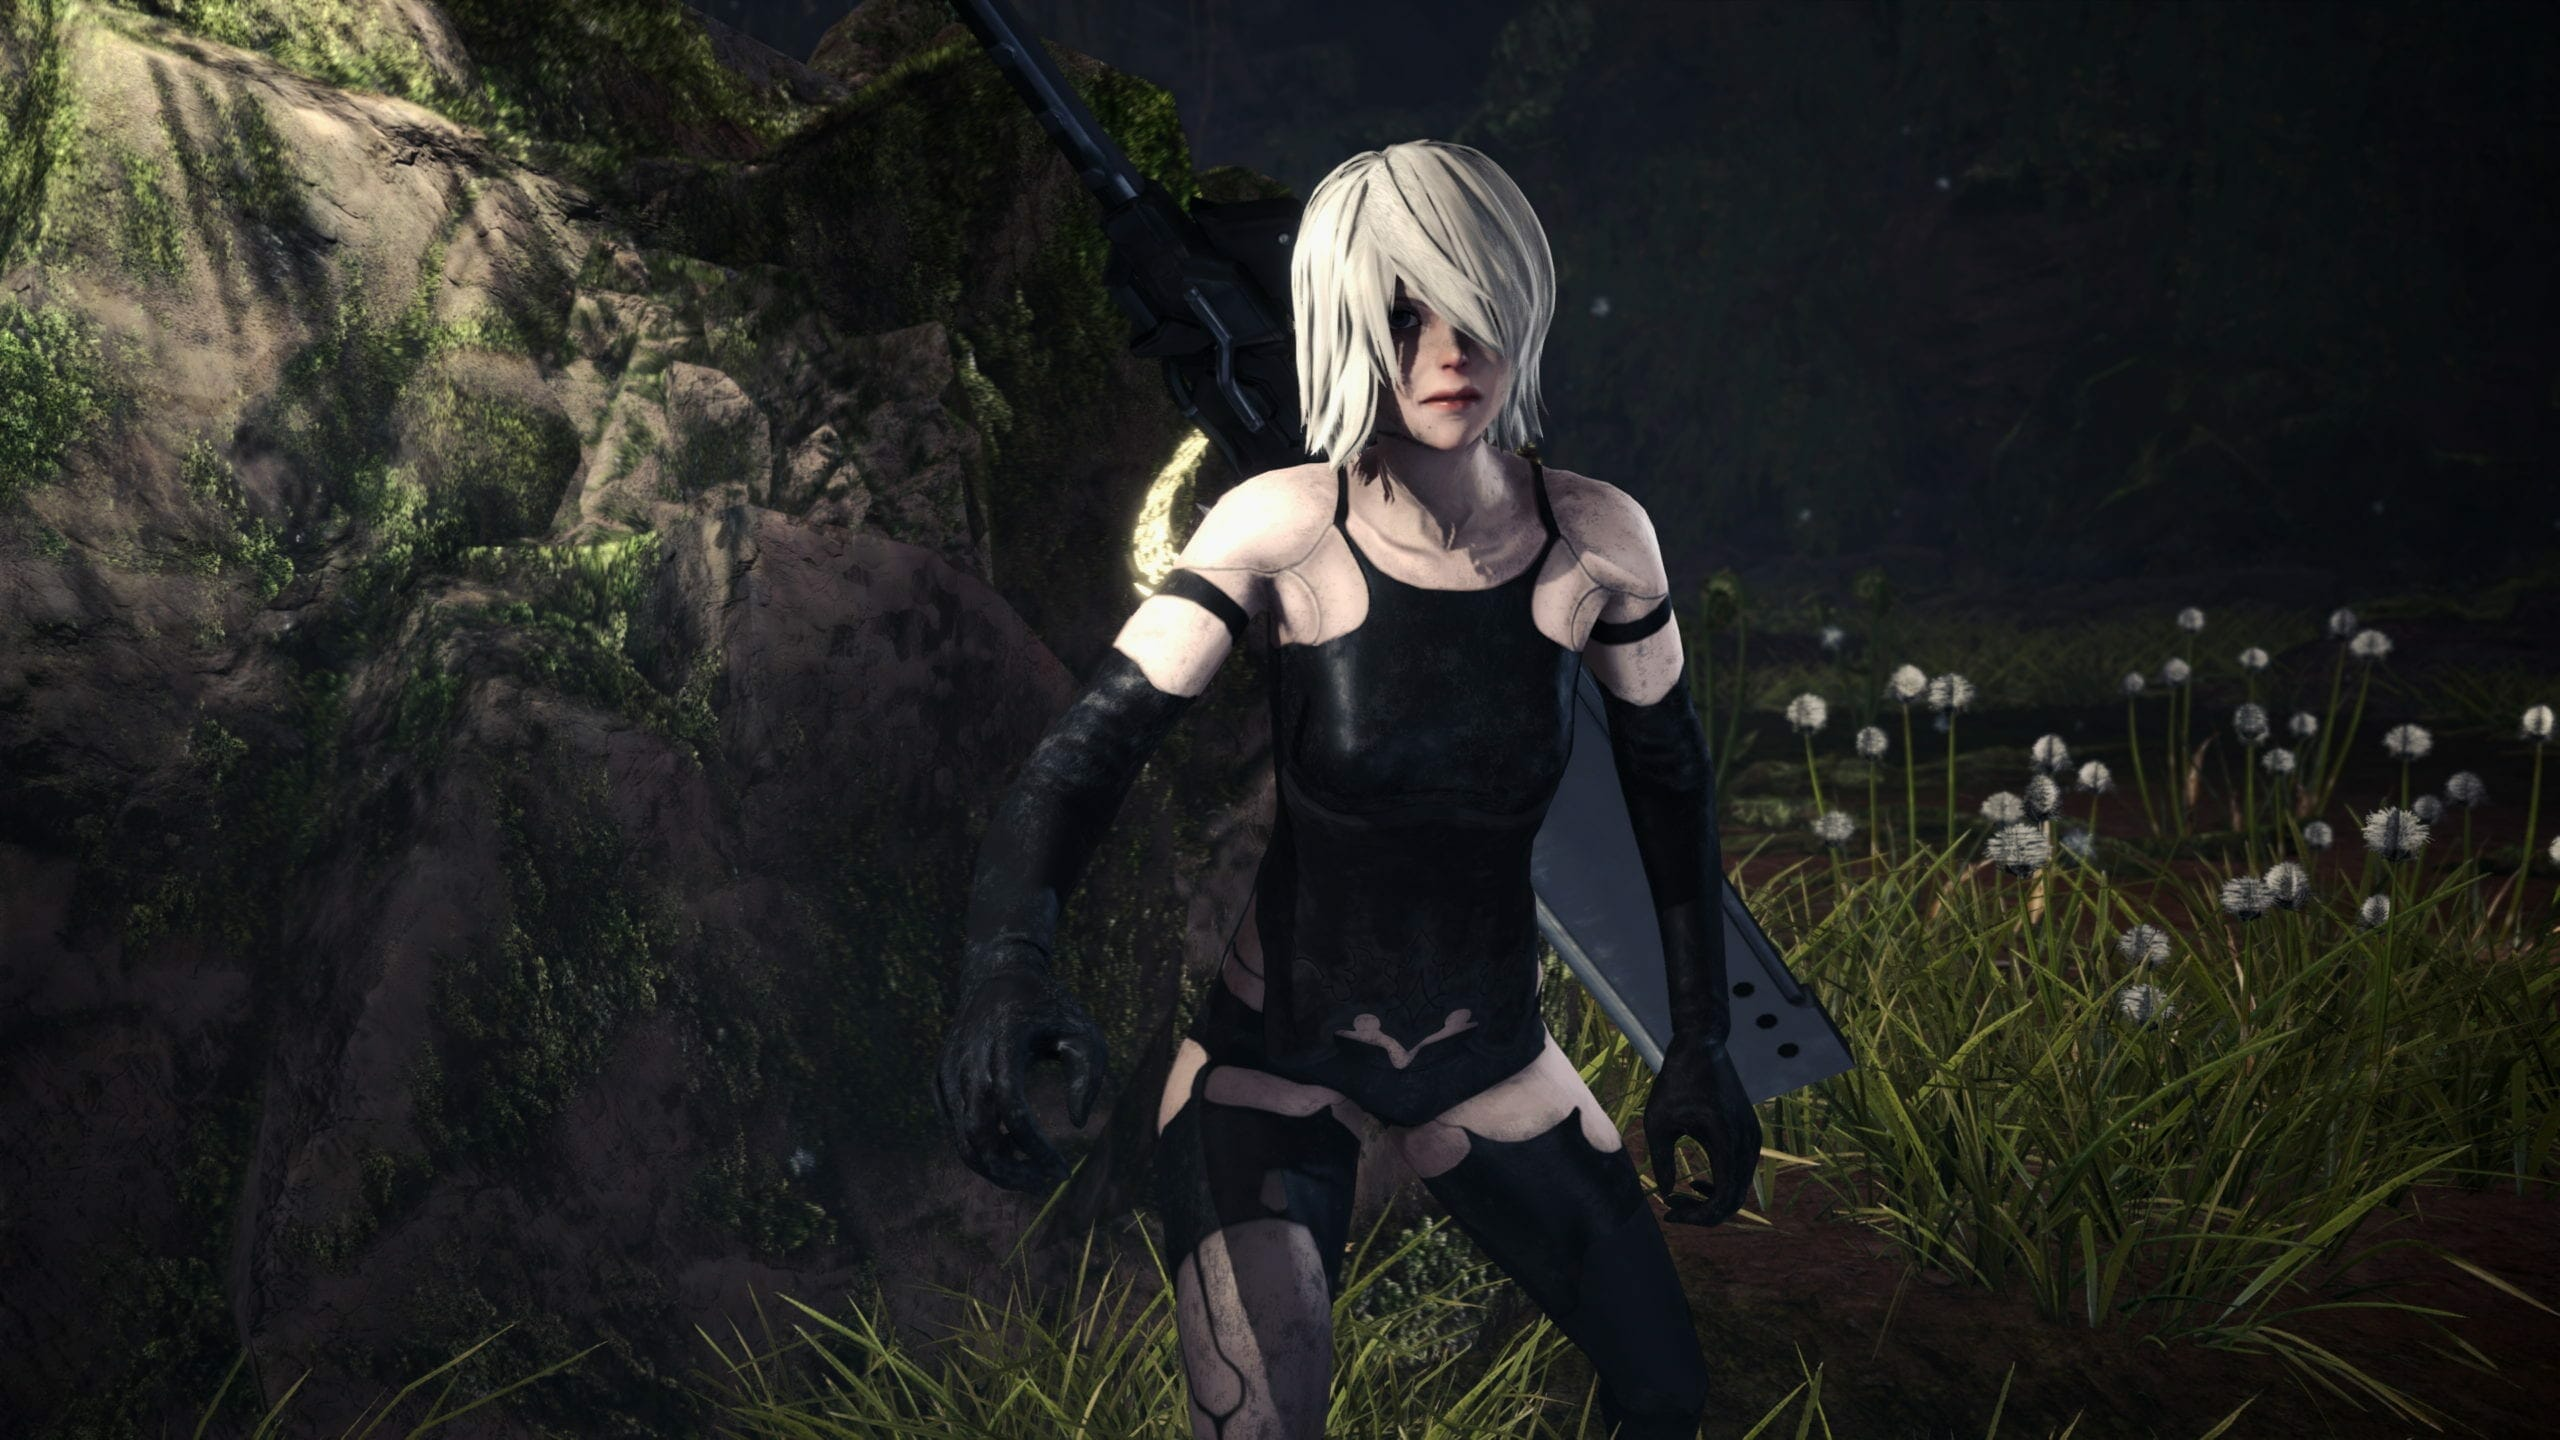 Monster Hunter World A2 'YoRha' Outfit Mod